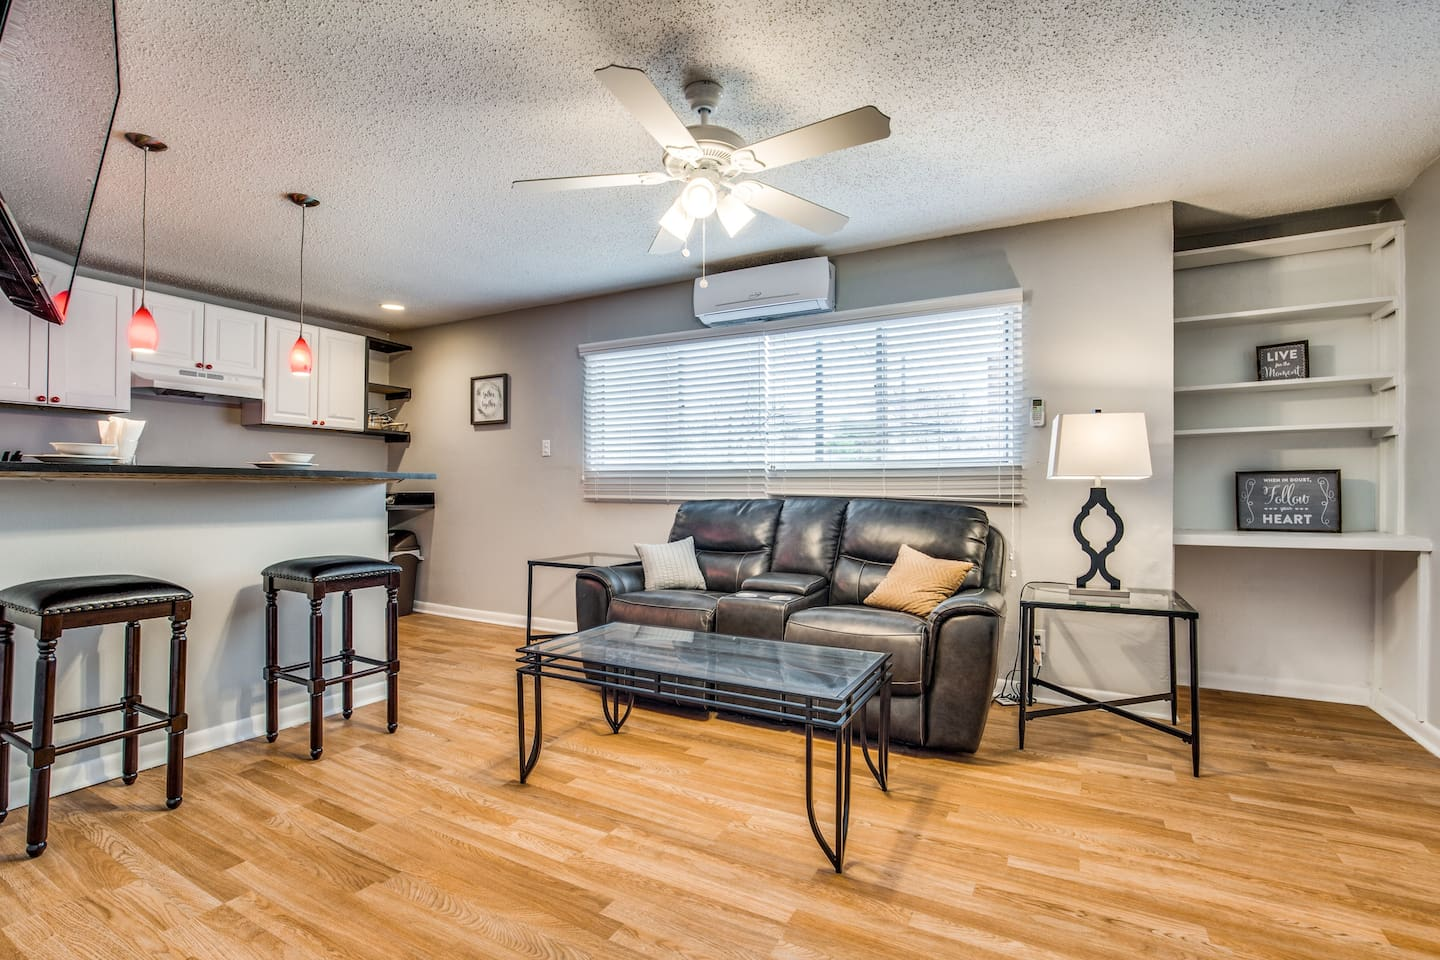 This living area is right off the entryway. Here you can see the complete kitchen with bar stools for dining. The room is complete with a ductless AC/Heating unit and a modern ceiling fan to accommodate you in any weather. Powered by a remote.